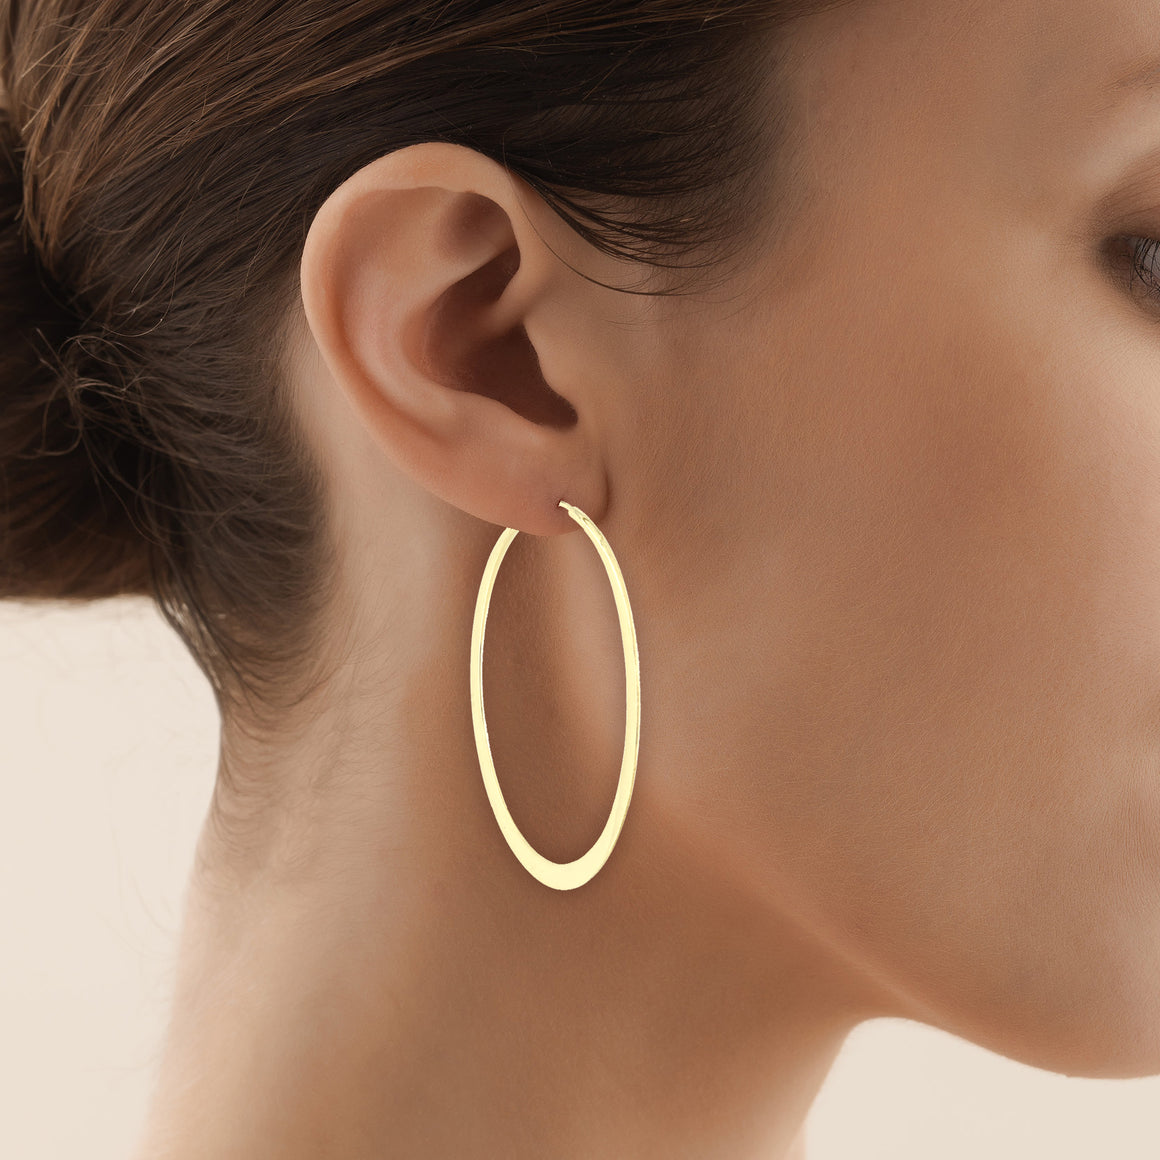 Endless Hoop Earrings in Yellow Gold - 2 inch